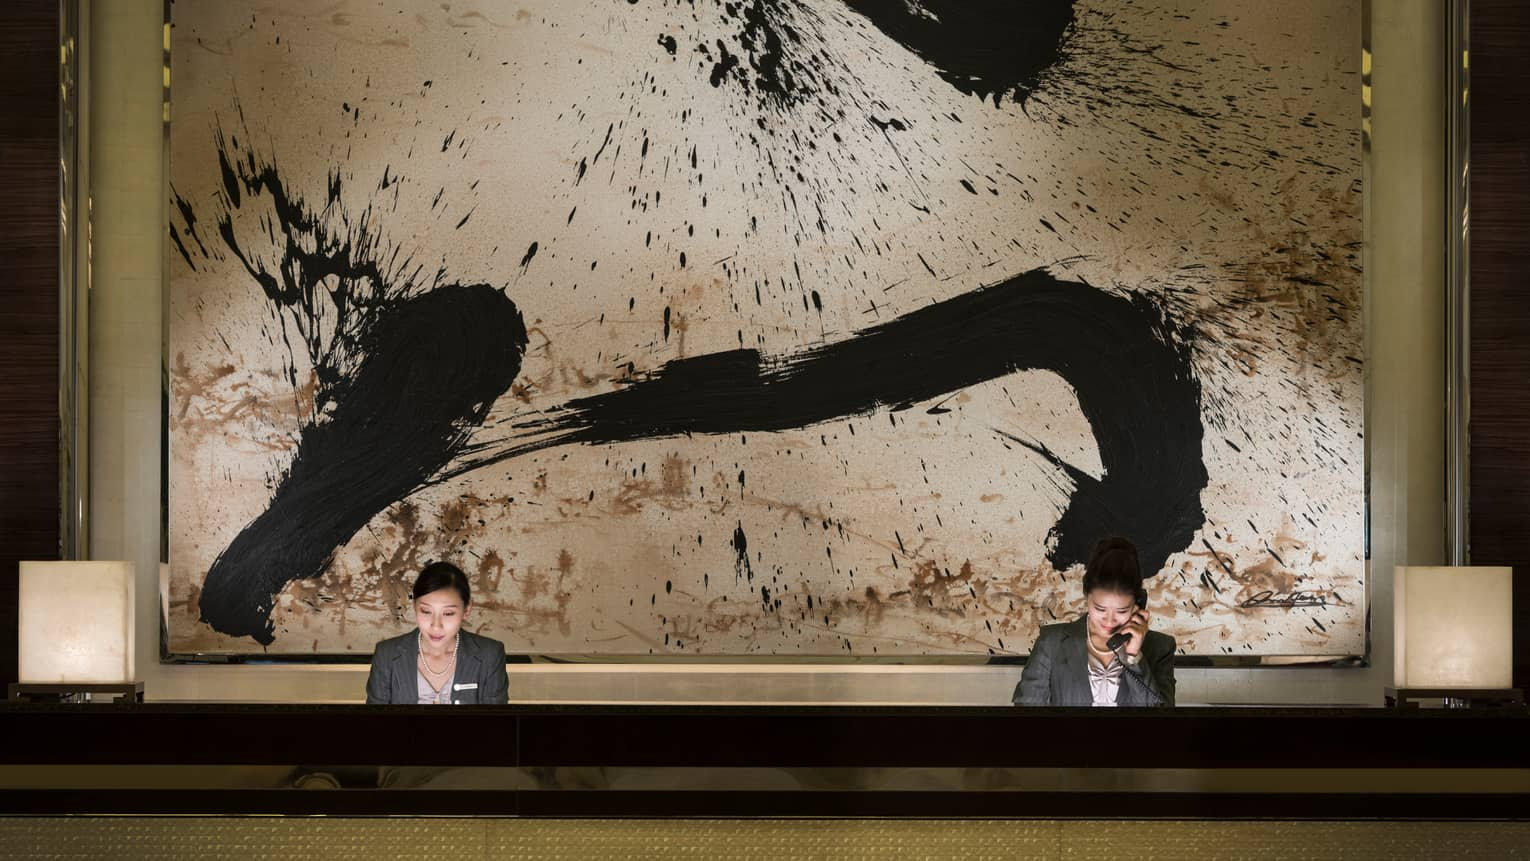 Two hotel reception staff at long desk under large black-and-white abstract painting